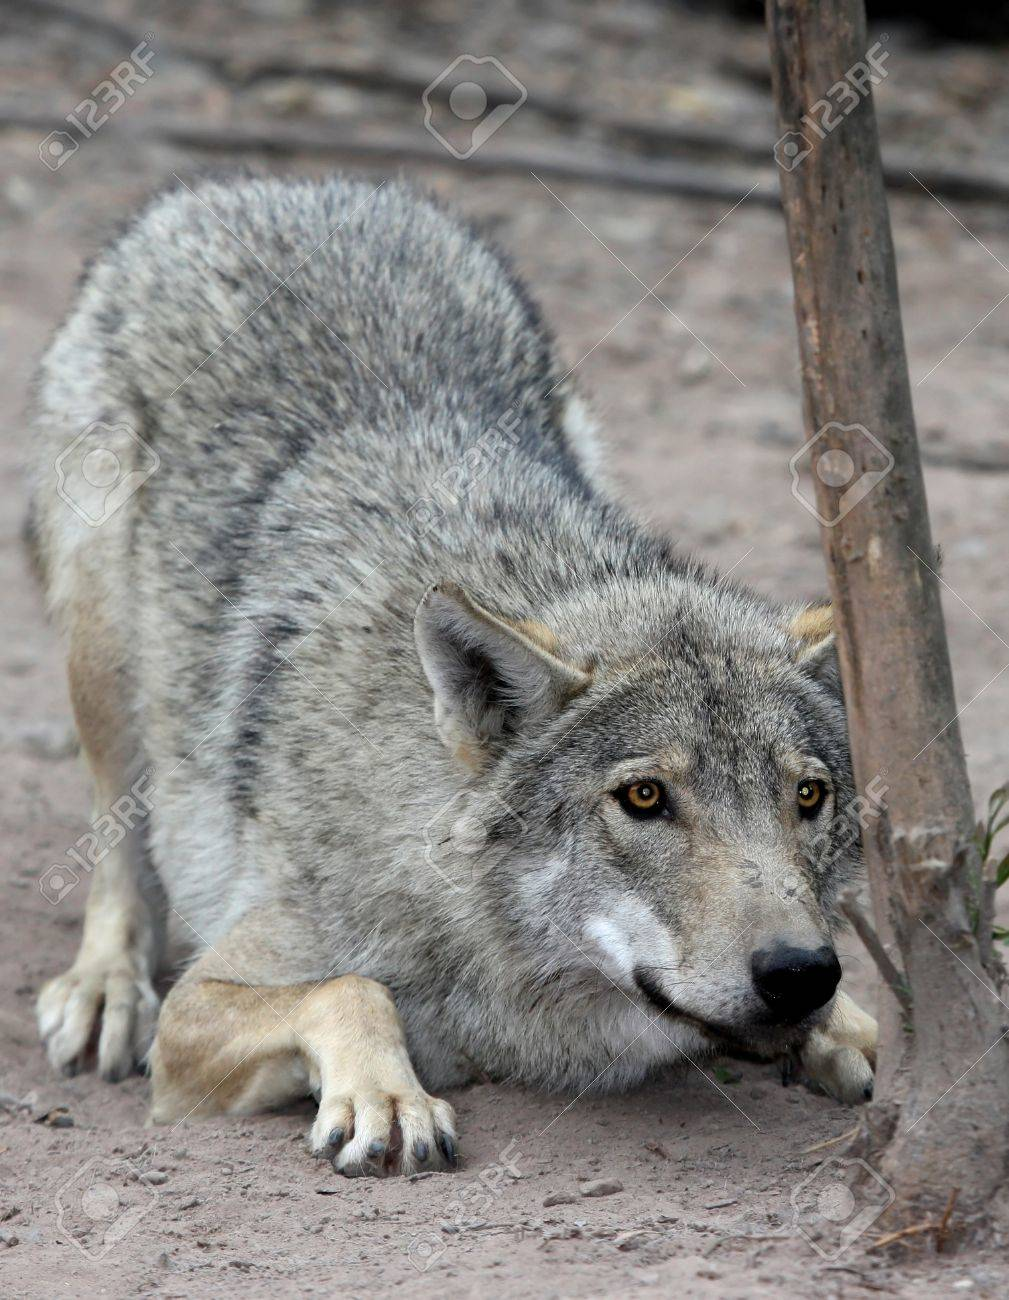 Timber or grey wolf crouched and about to pounce Stock Photo - 11744354